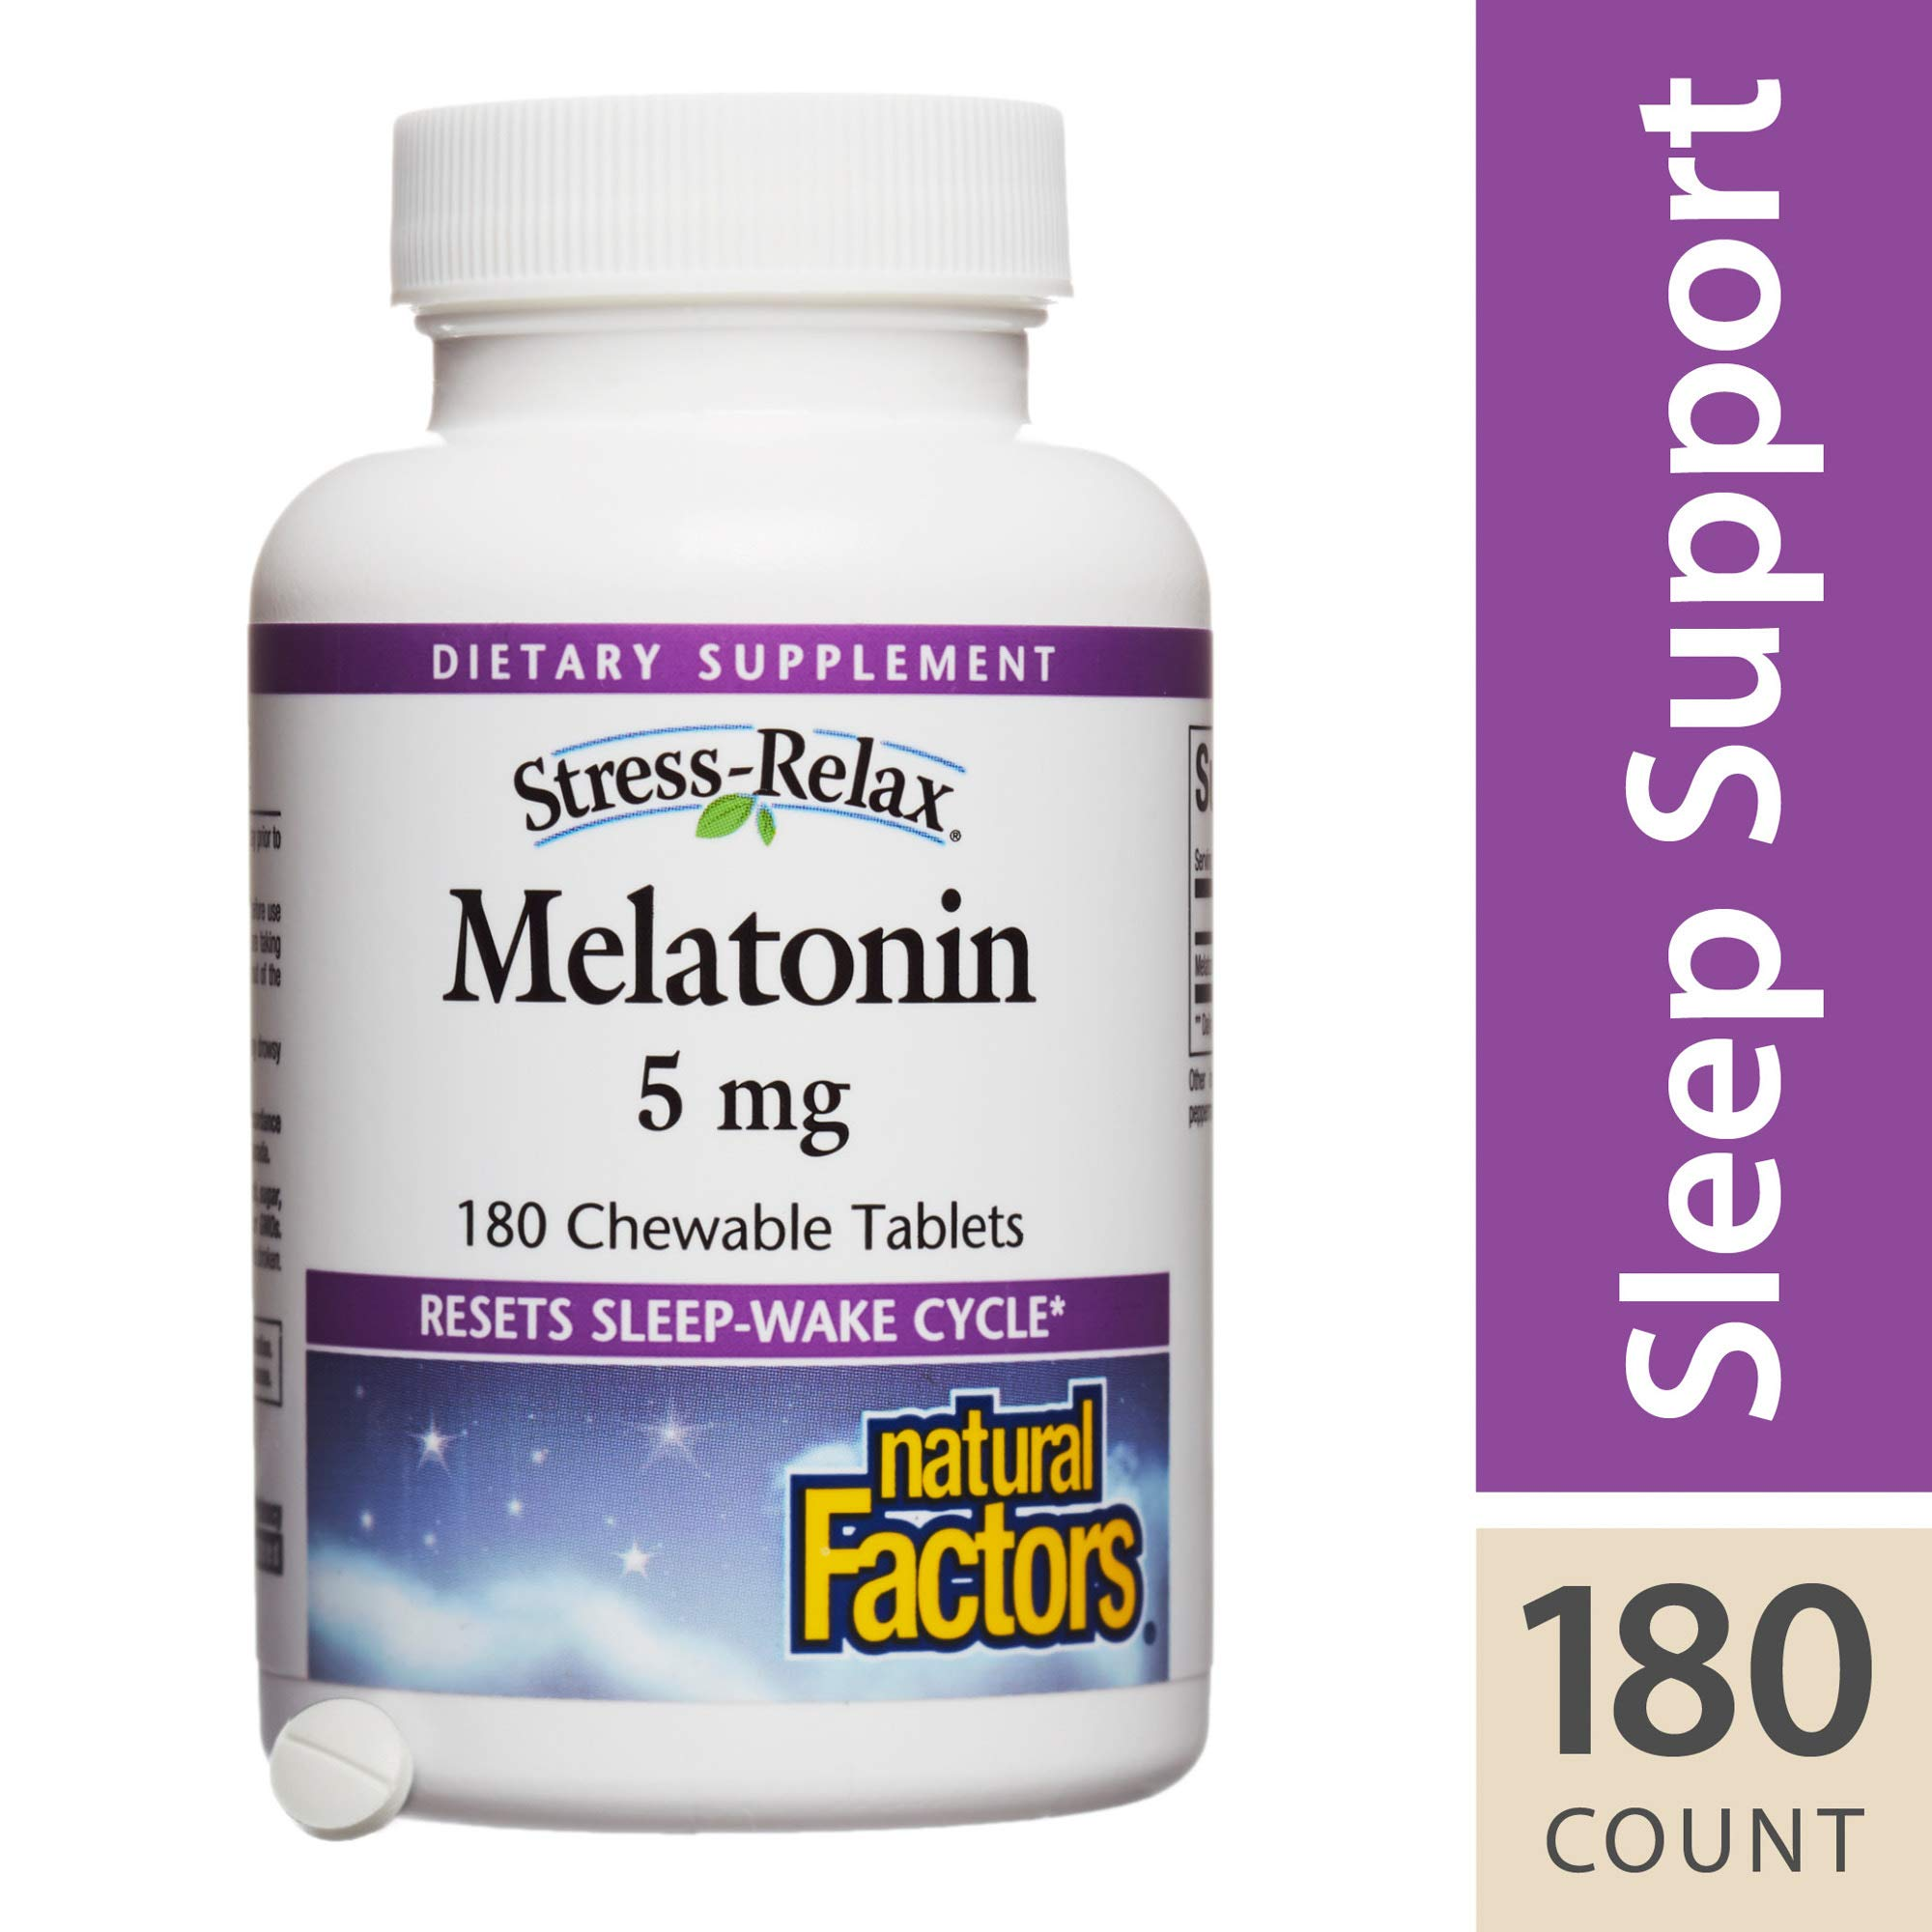 Stress-Relax by Natural Factors, Melatonin 5 mg Chewable, Sleep Aid Without Drowsy